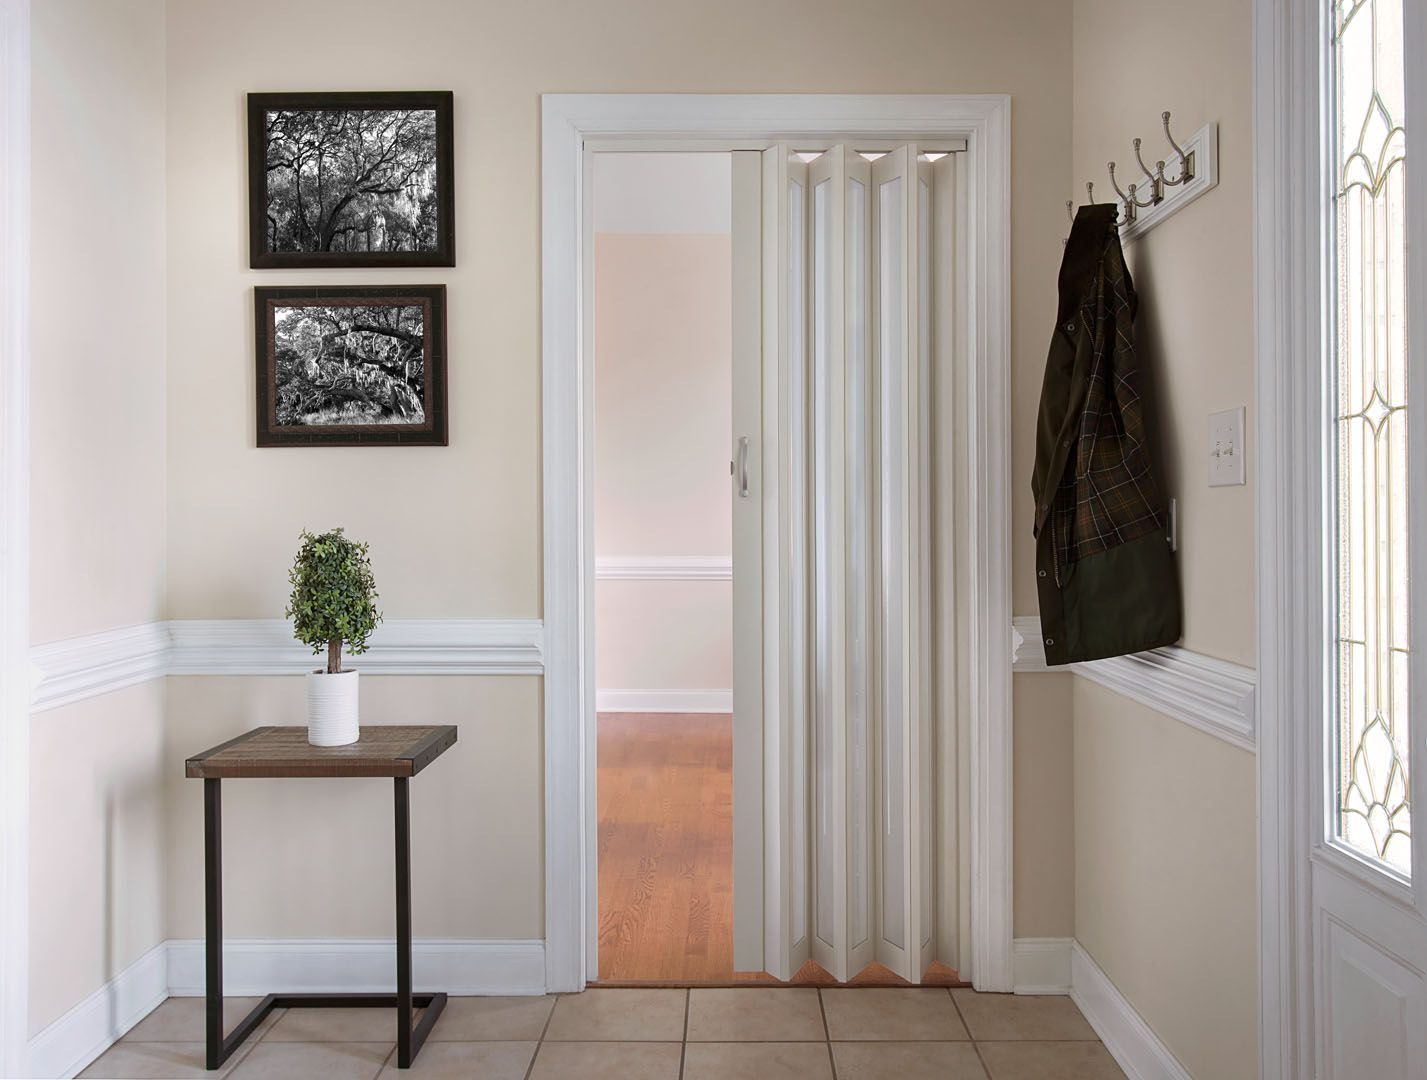 Accordion Is The 1 Internet Supplier Of Panelfold Accordion Doors And Dividers